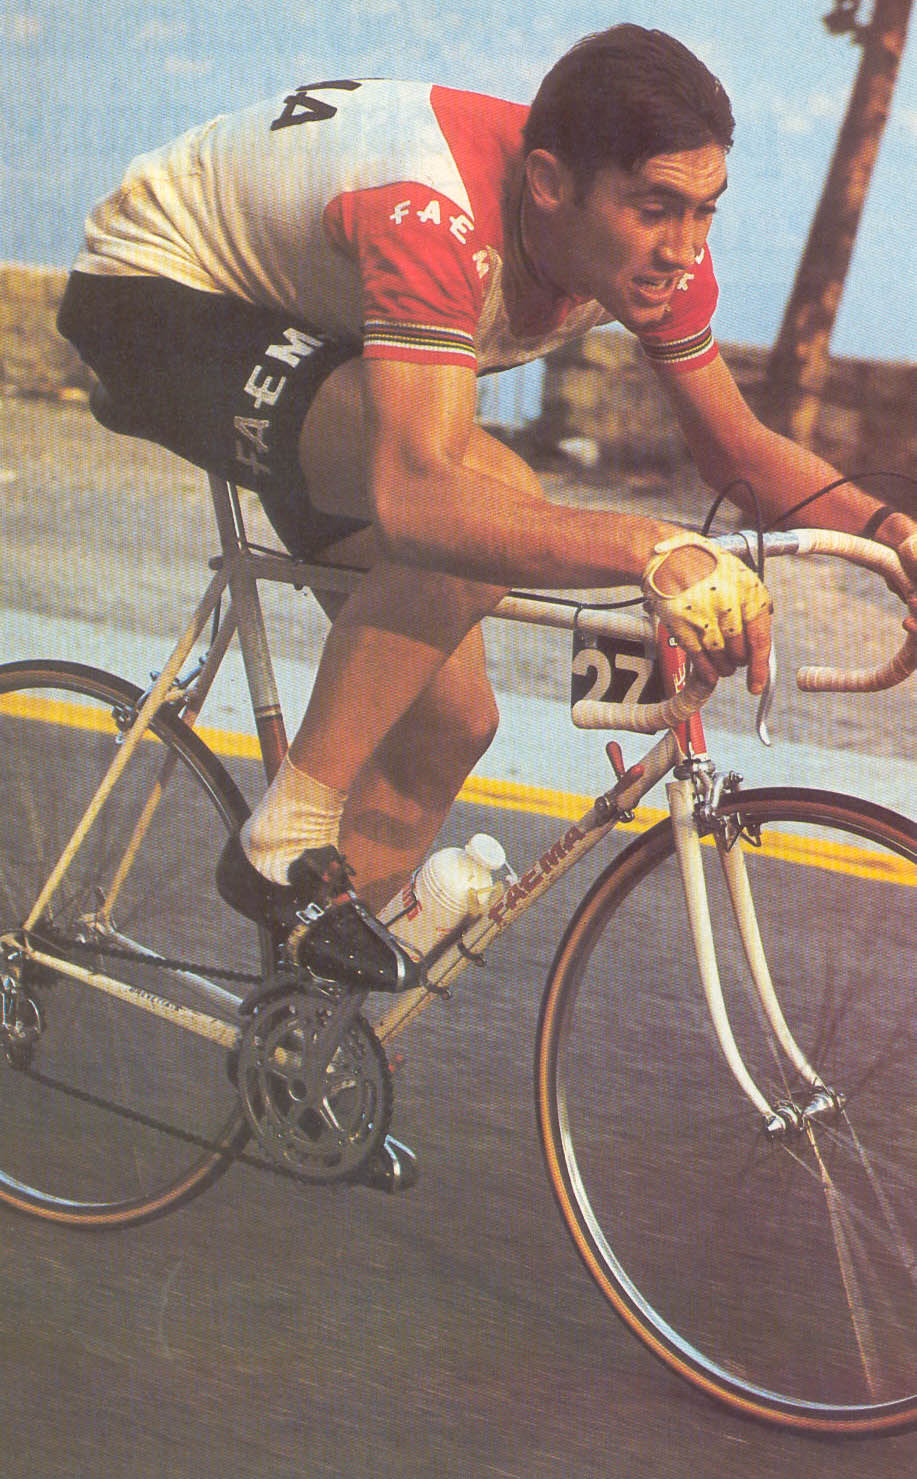 http://www.theracingbicycle.com/images/Merckx_Faema.jpg